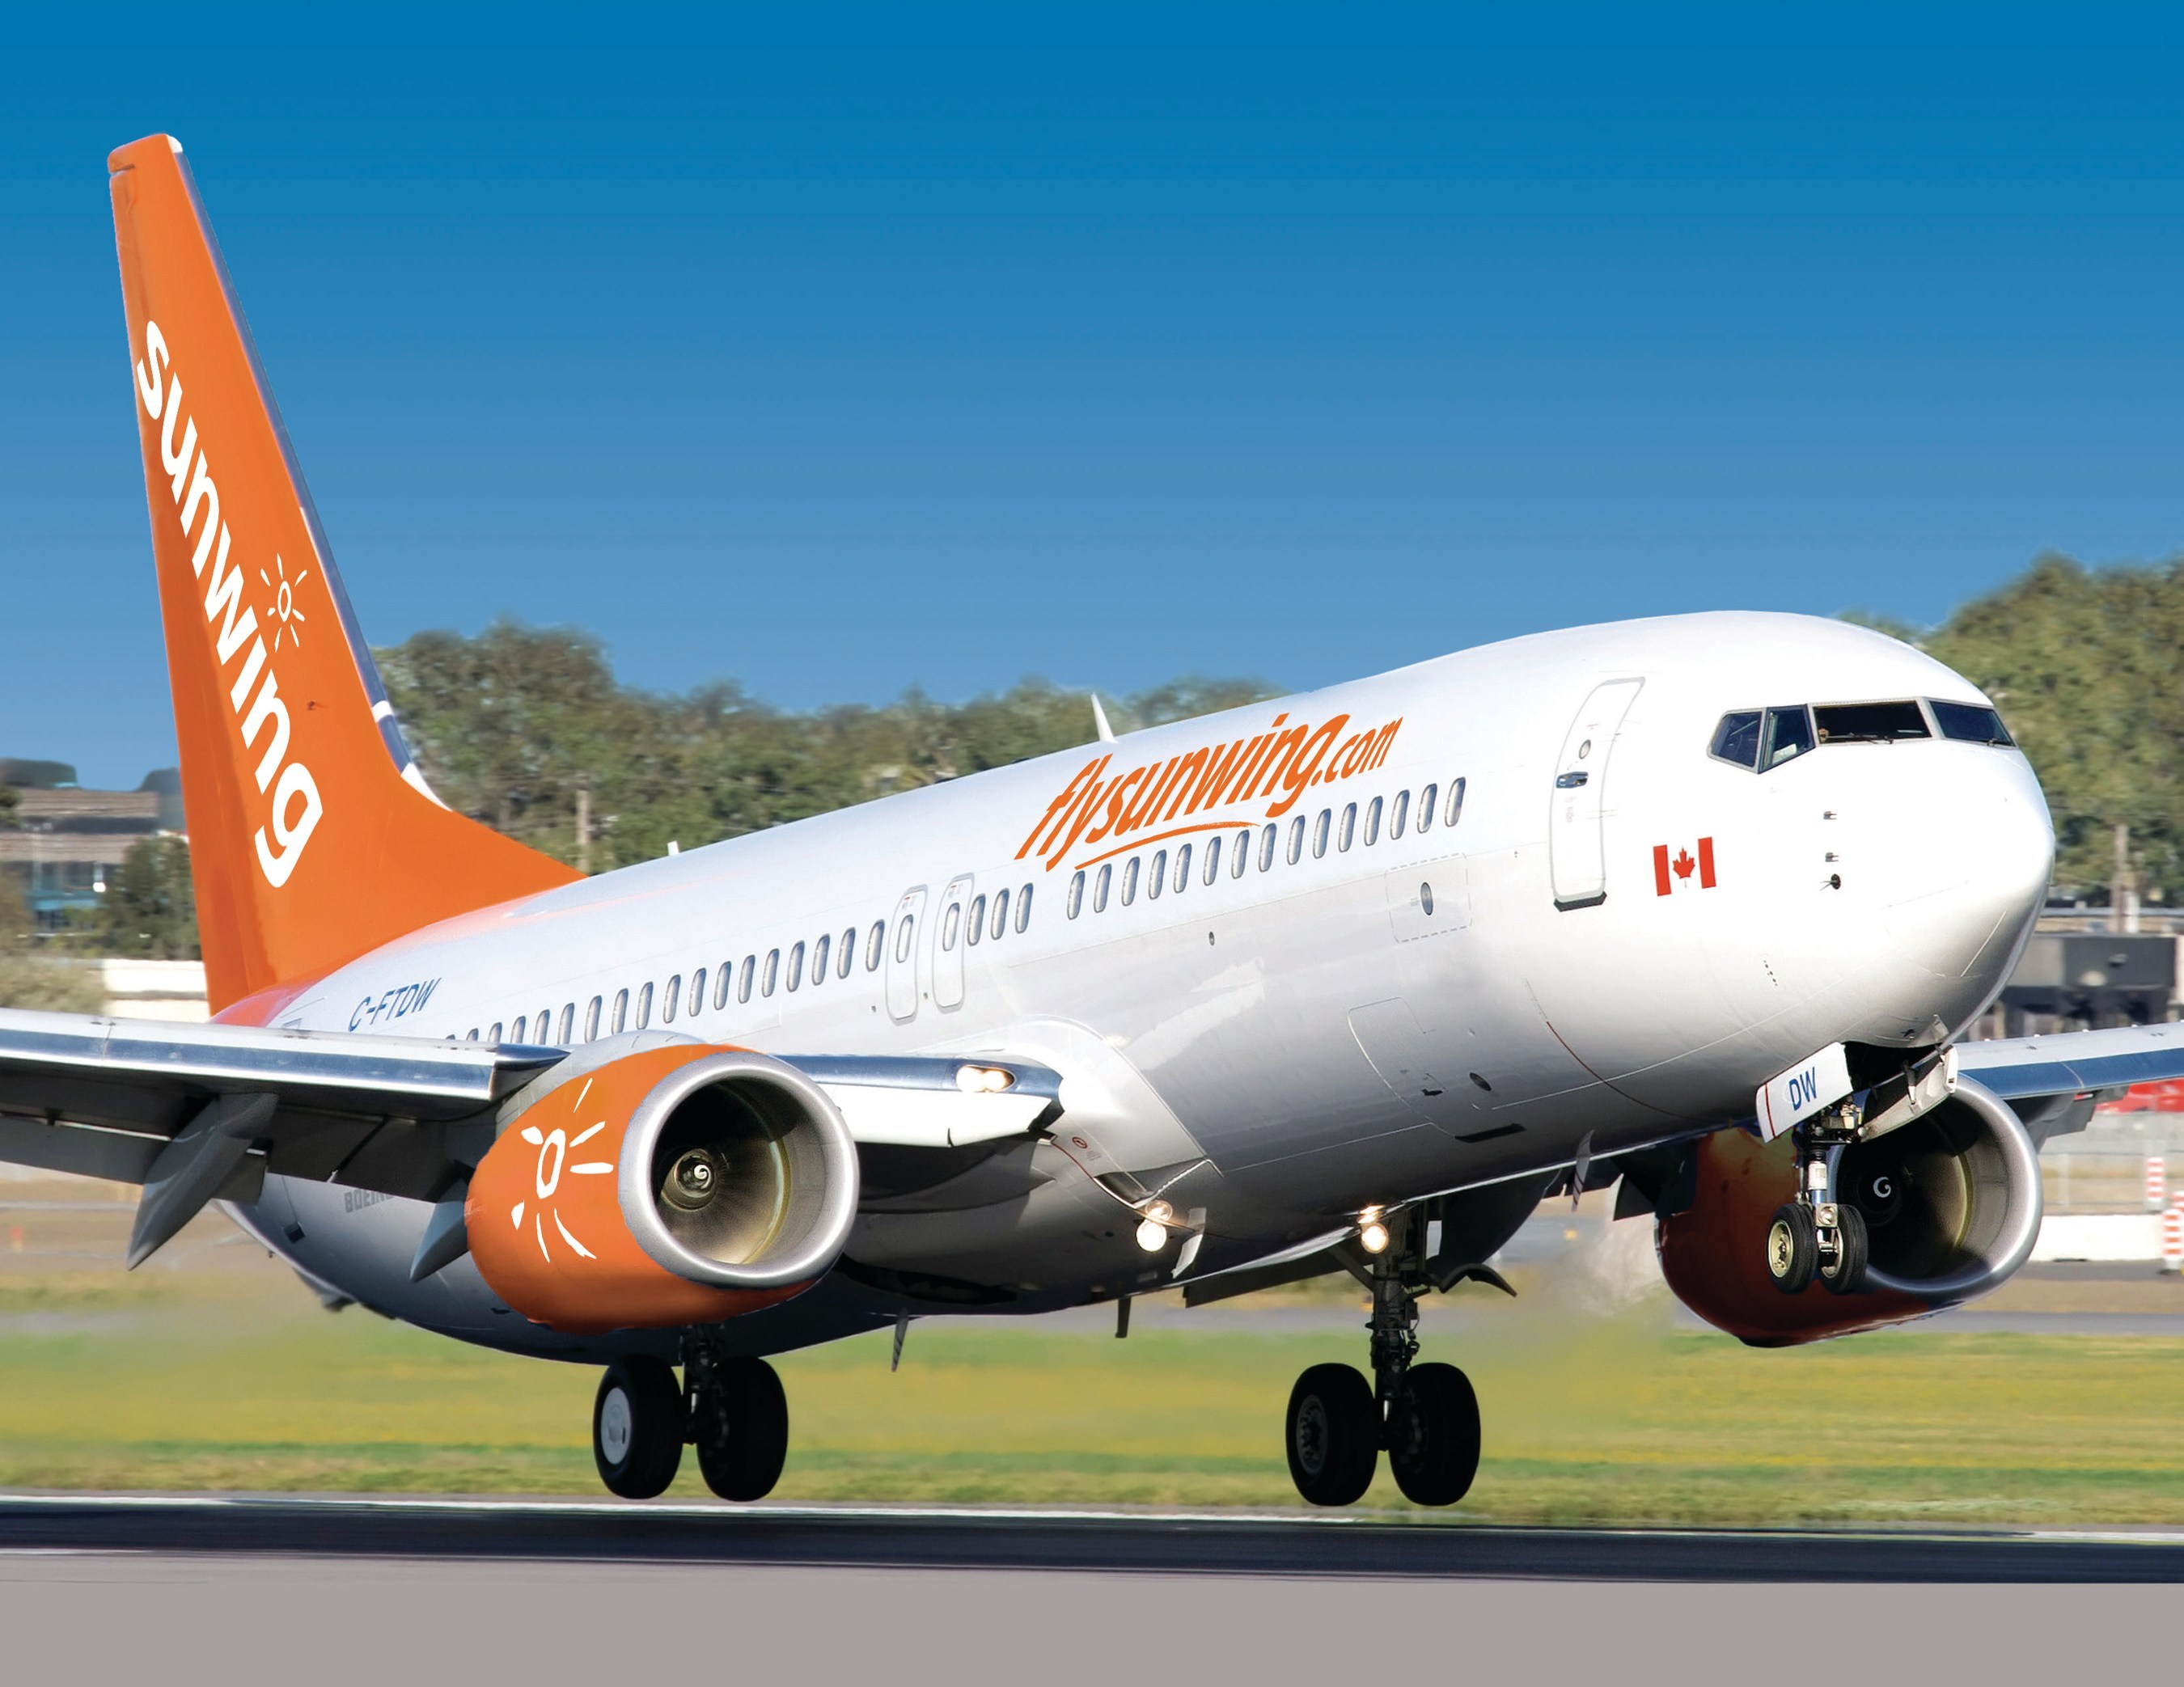 Αποτέλεσμα εικόνας για Sunwing introduces direct winter flight service from Vancouver to Montego Bay